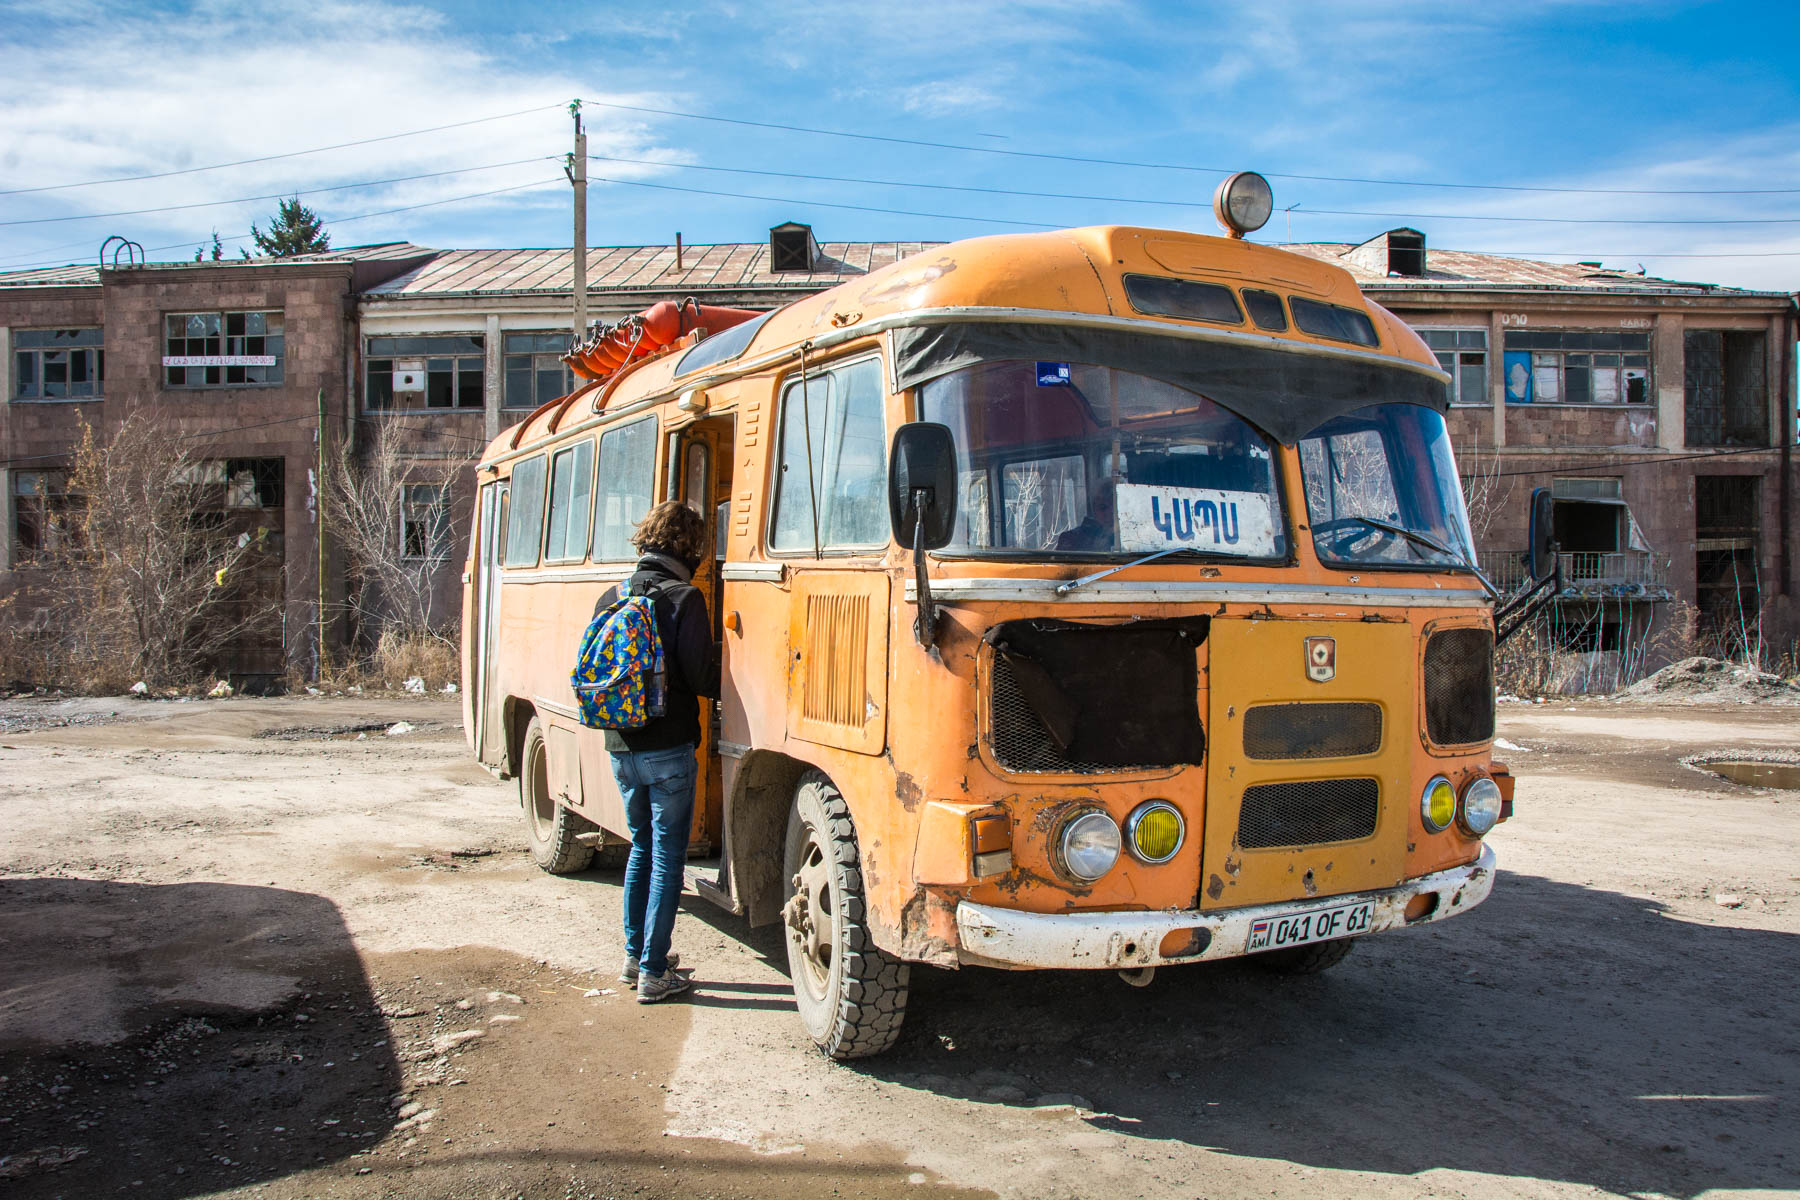 An old orange soviet bus in Gyumri, Armenia